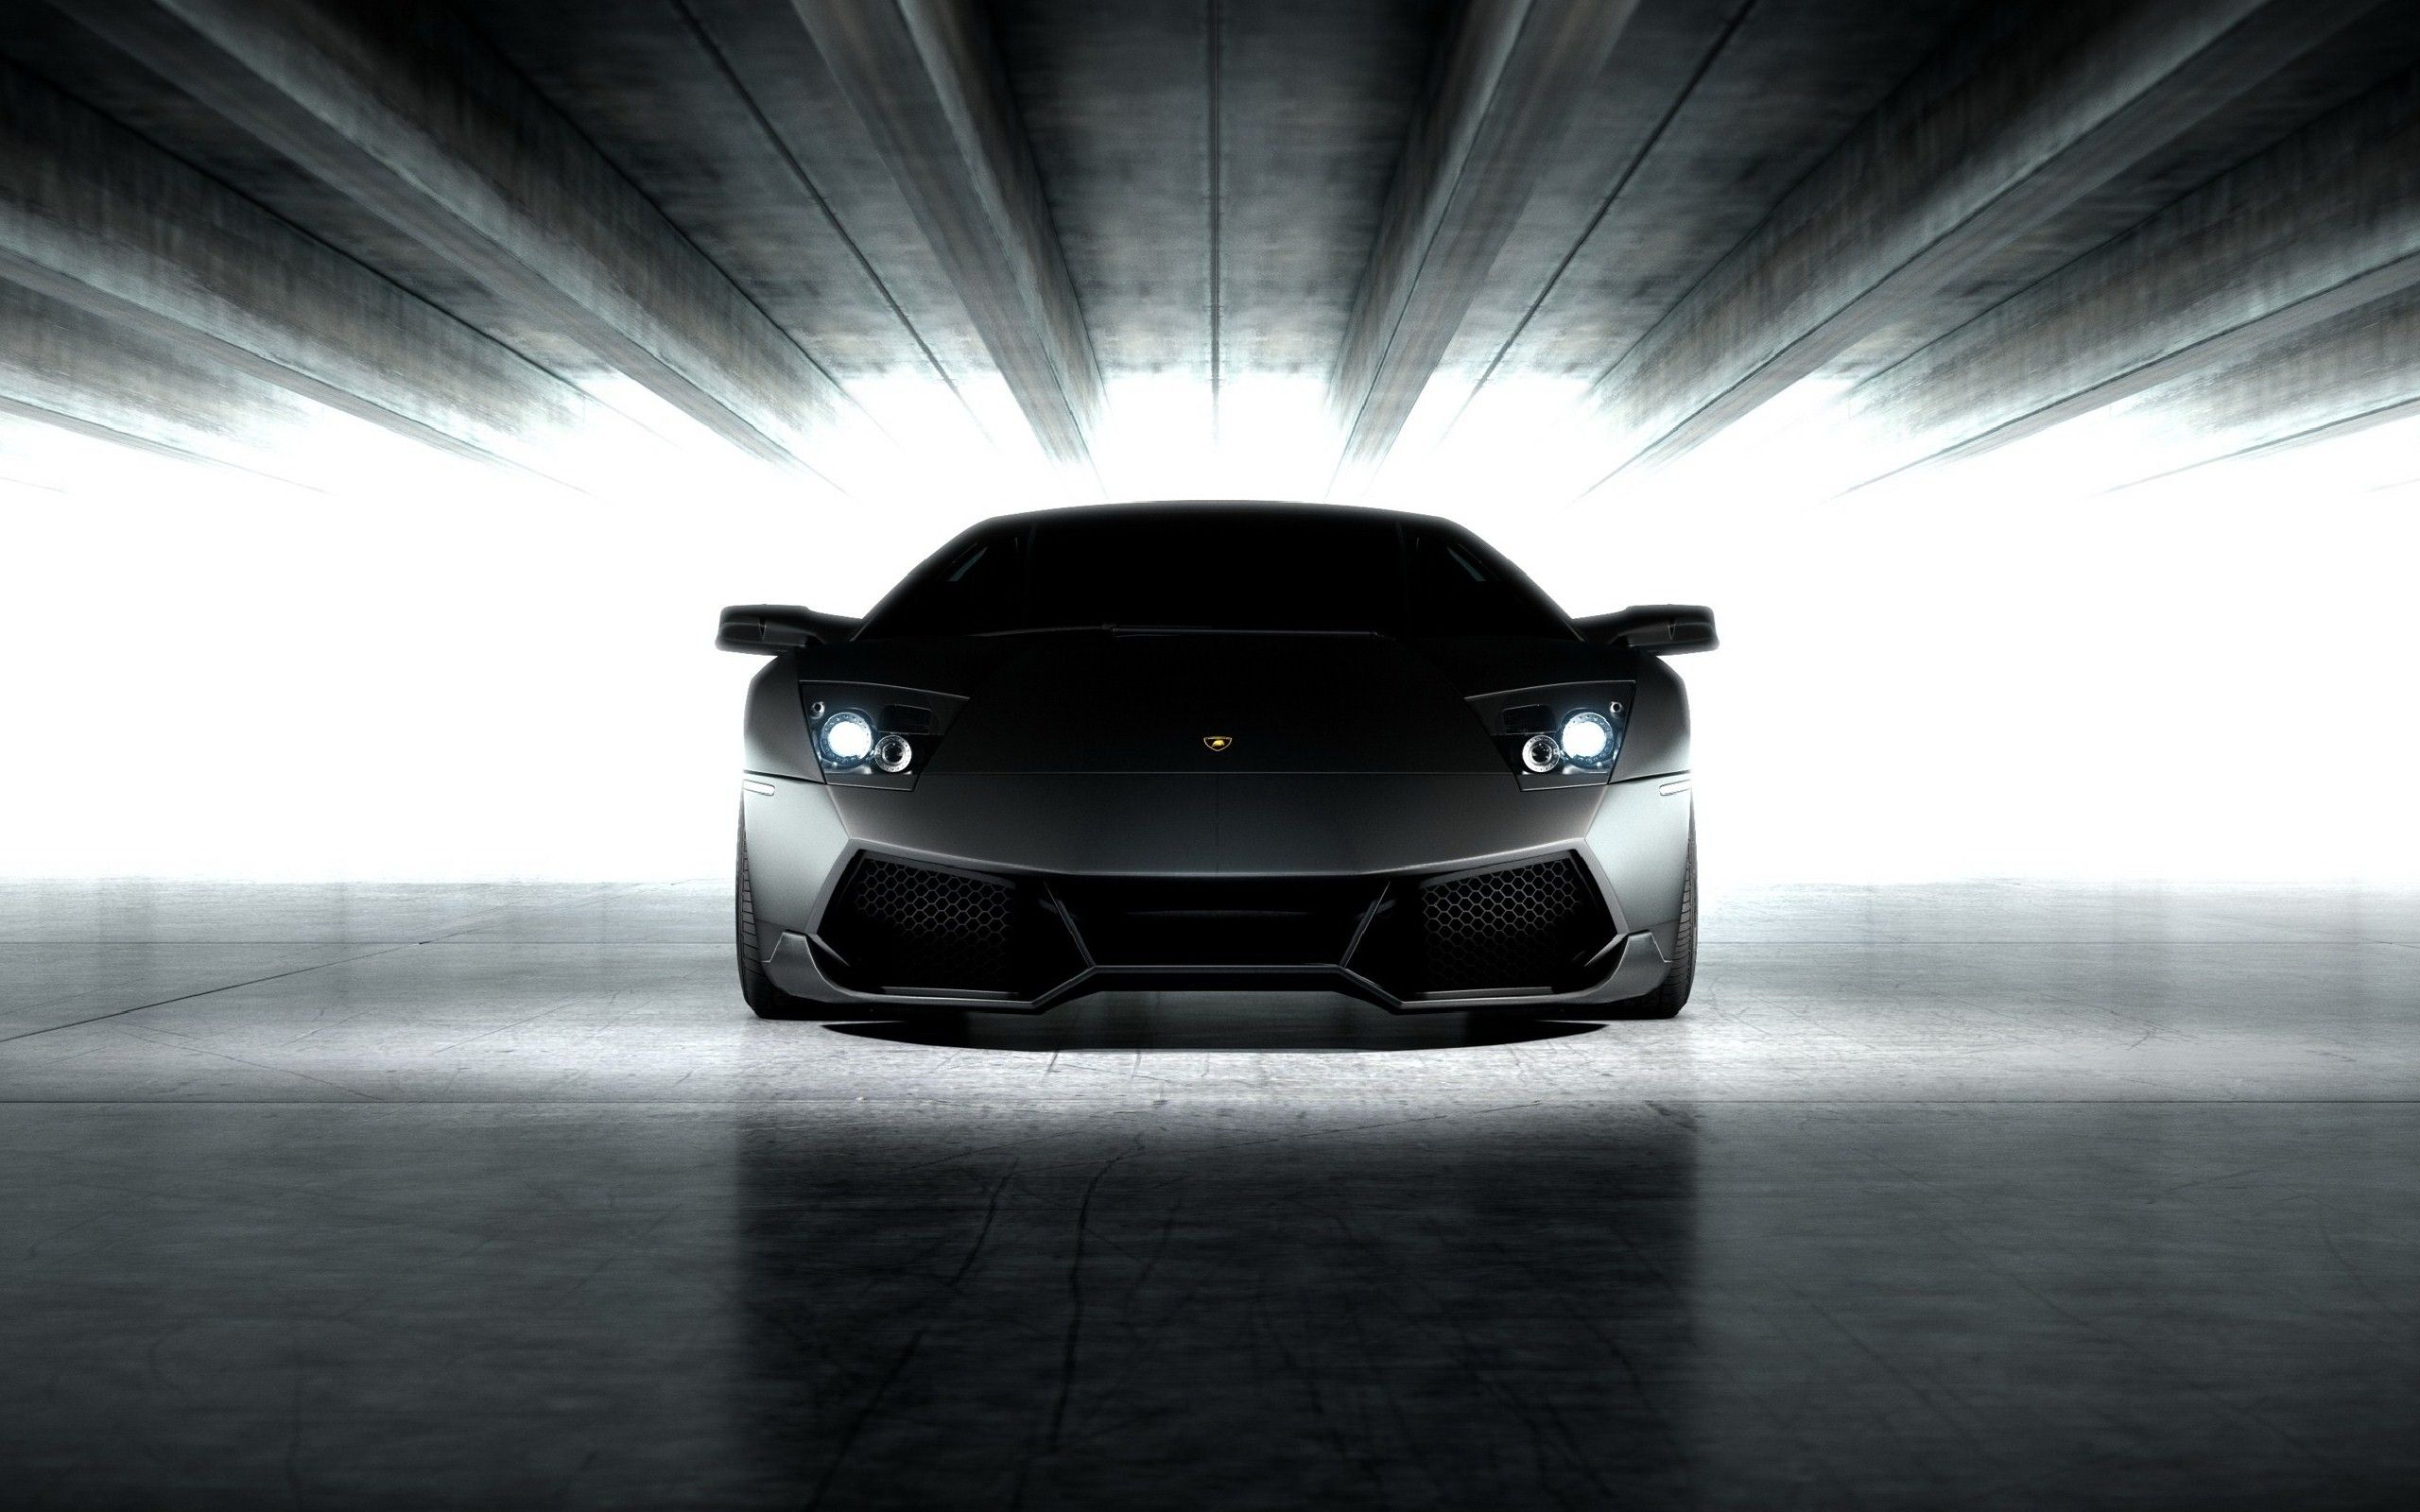 24 Sports Car Wallpapers For Your Desktop In High Quality Hd Sports Car Wallpaper Sports Car Car